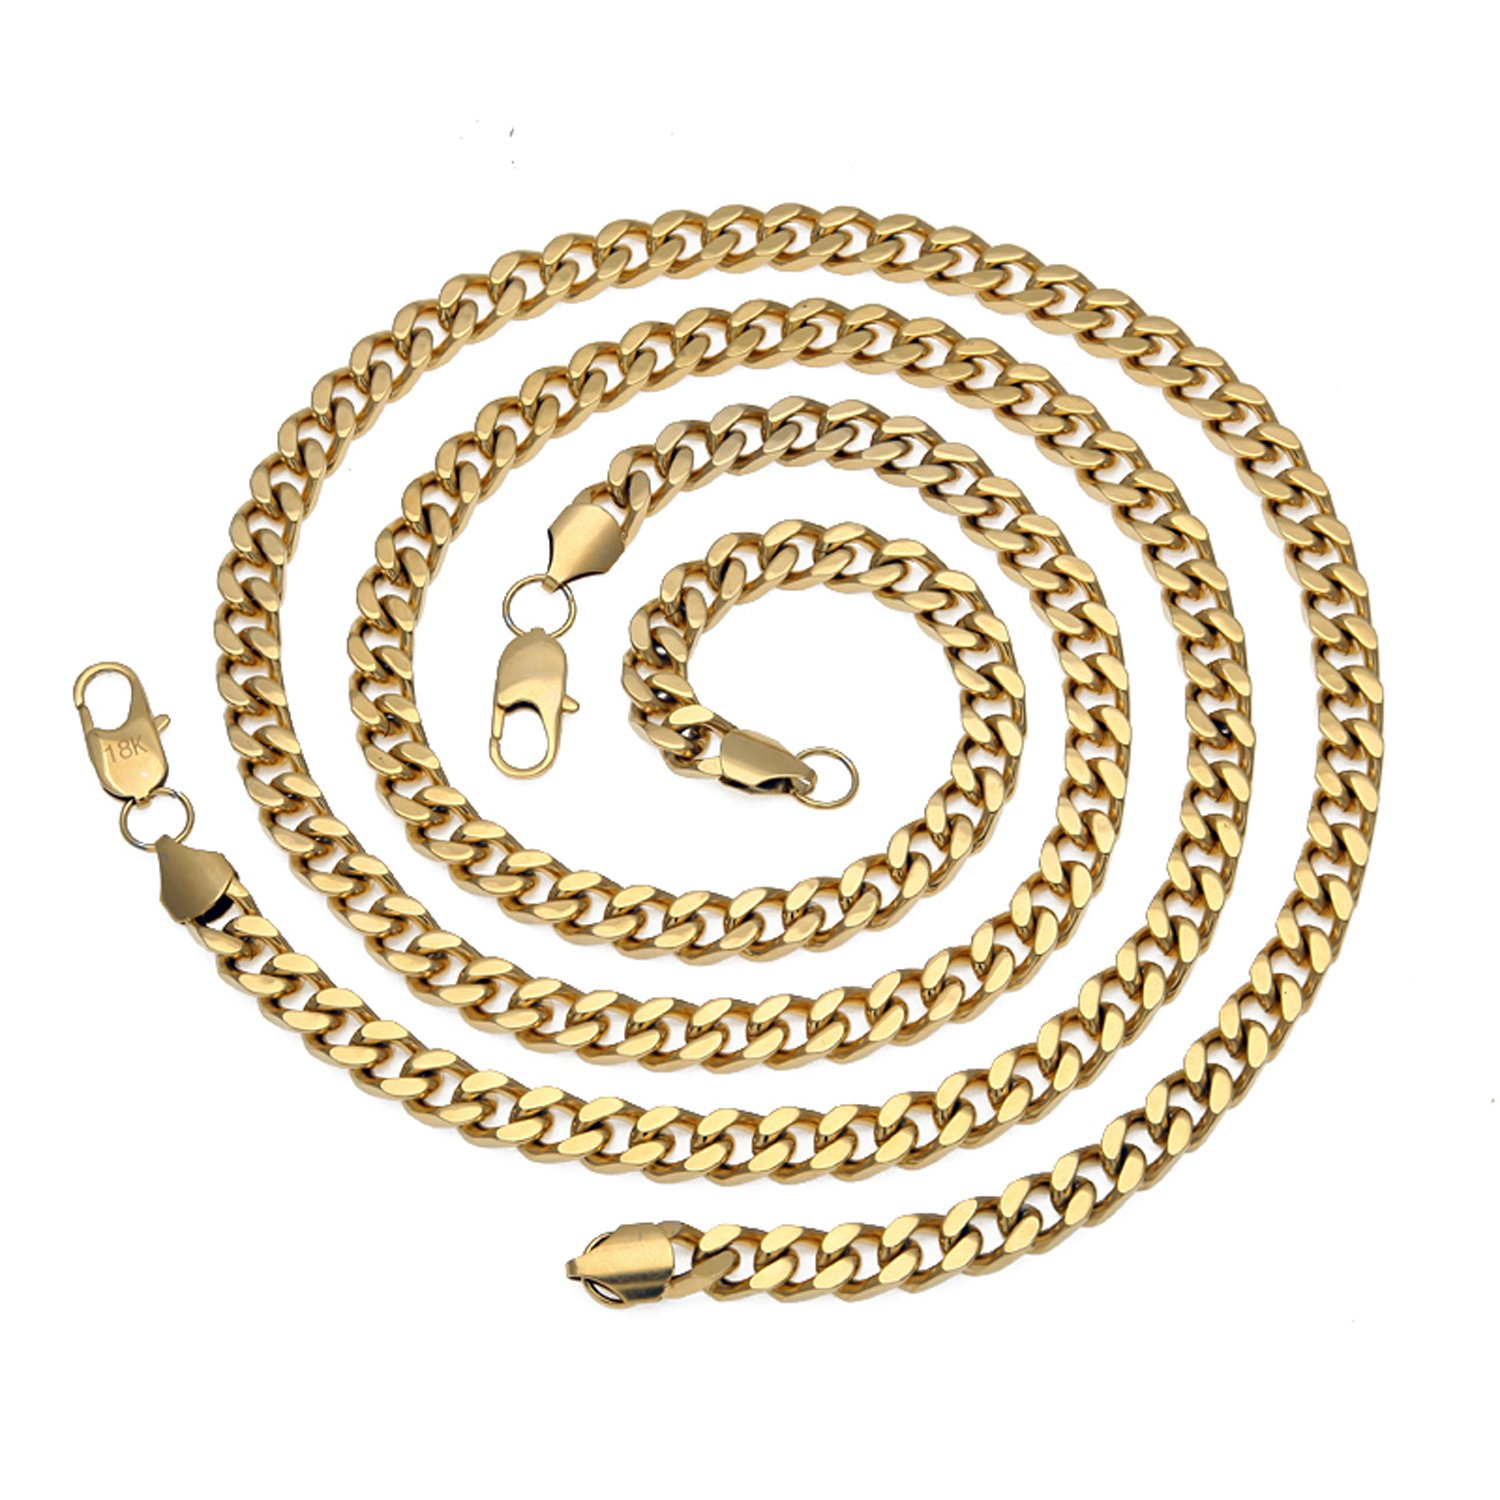 18K Men Cuban Chain Necklace 9MM Miami Link Diamond cut Round Necklace w/ real solid clasp USA PATENTED